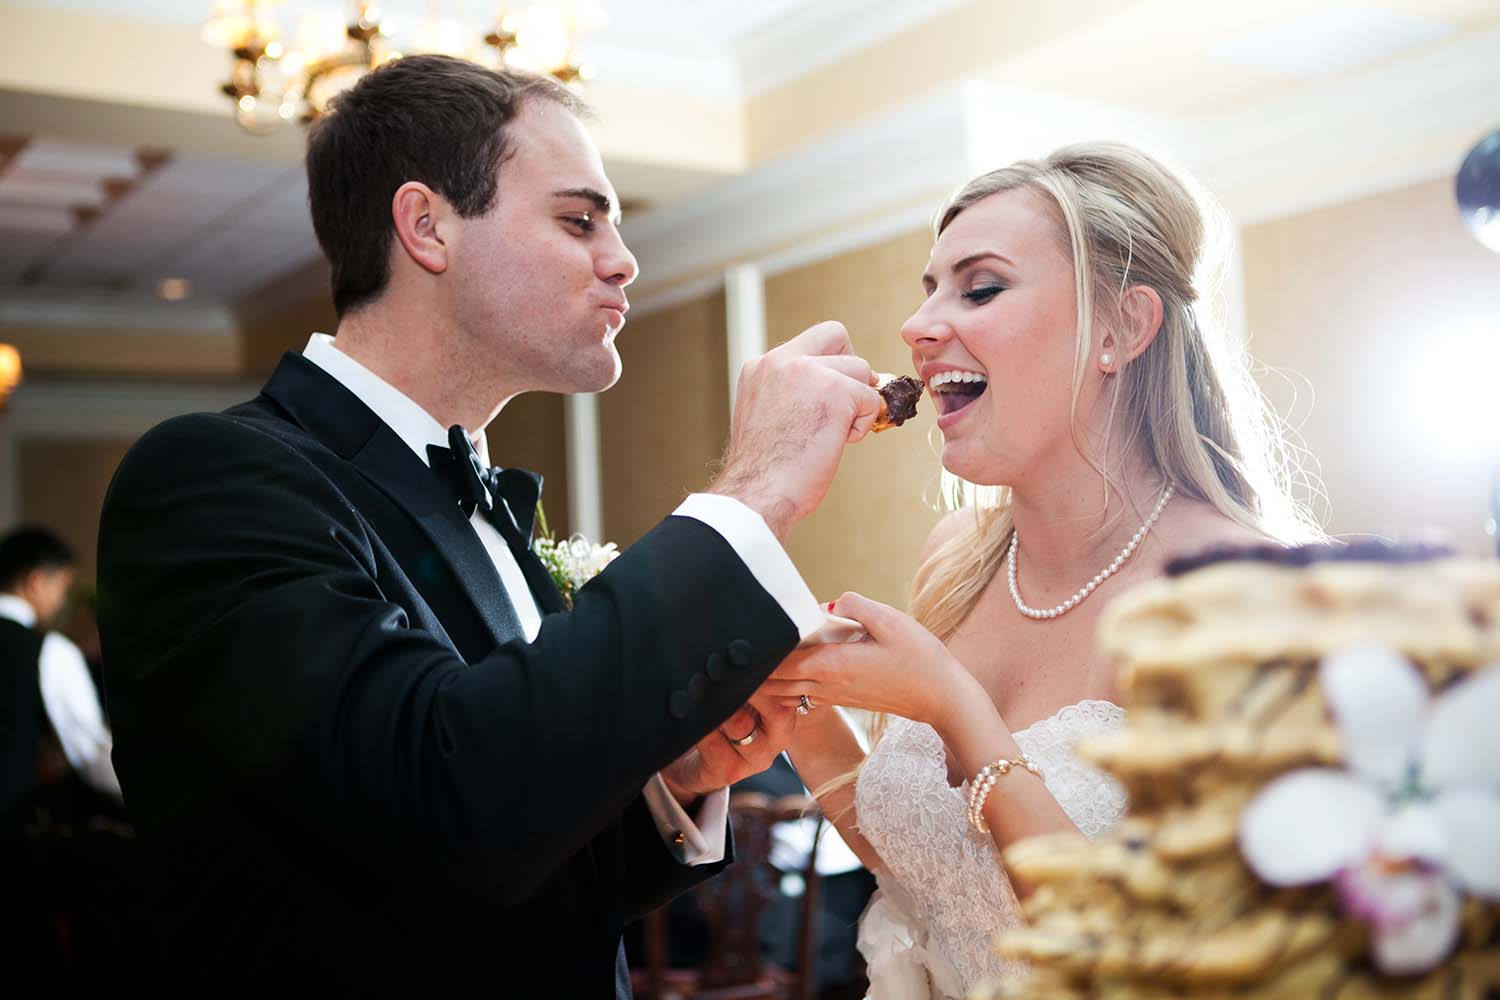 Kristina & John Married, cutting wedding cake, feeding each other a piece of cake, bride and groom cake